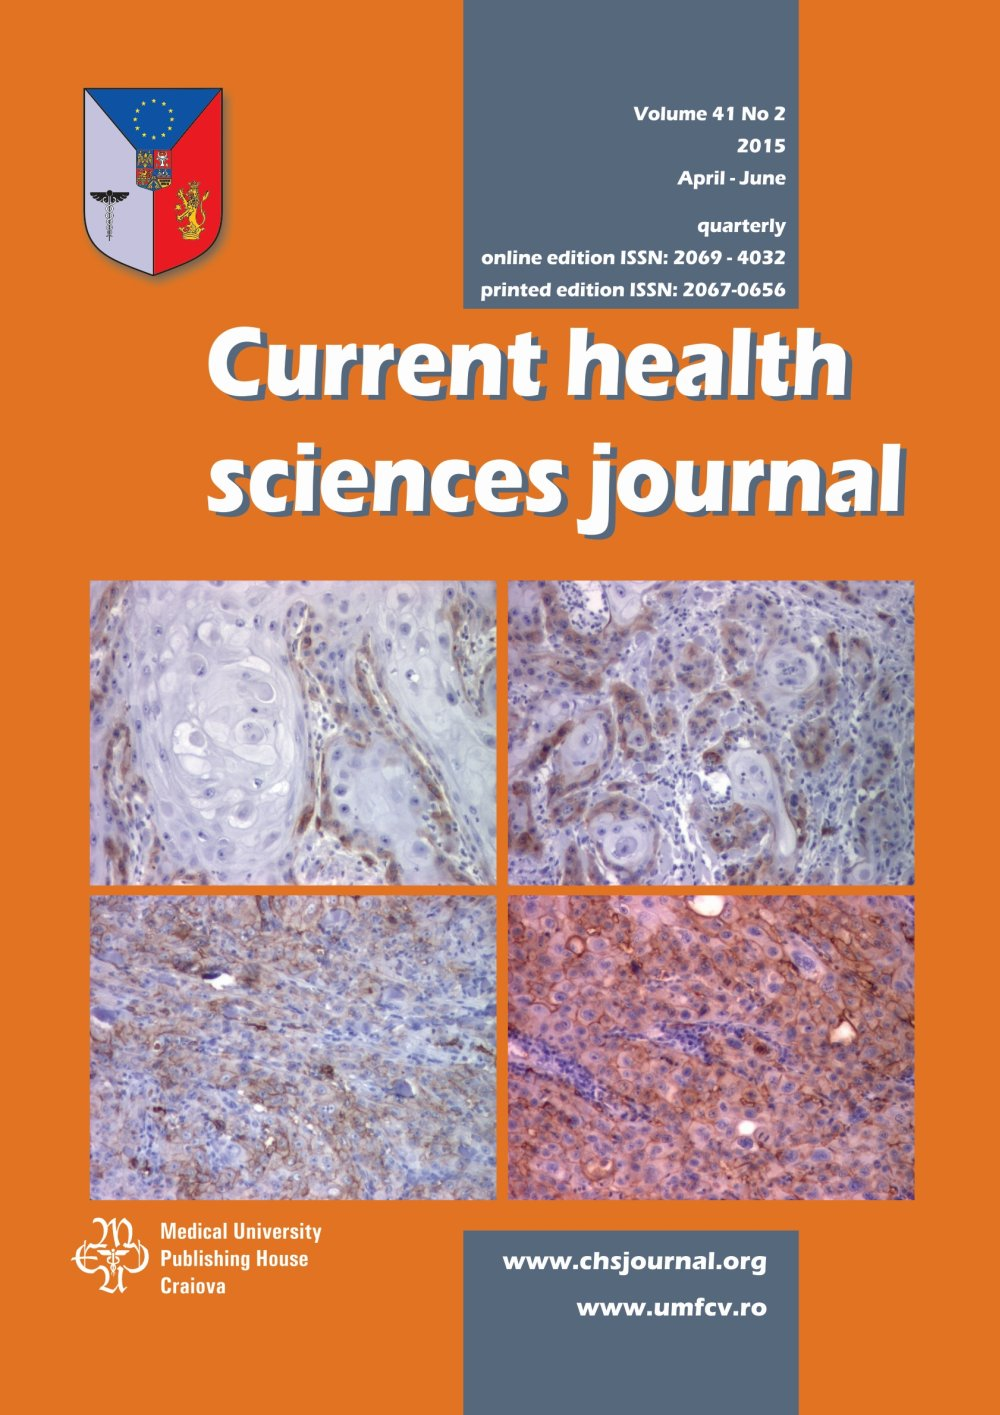 Current Health Sciences Journal, vol. 41 no. 2, 2015